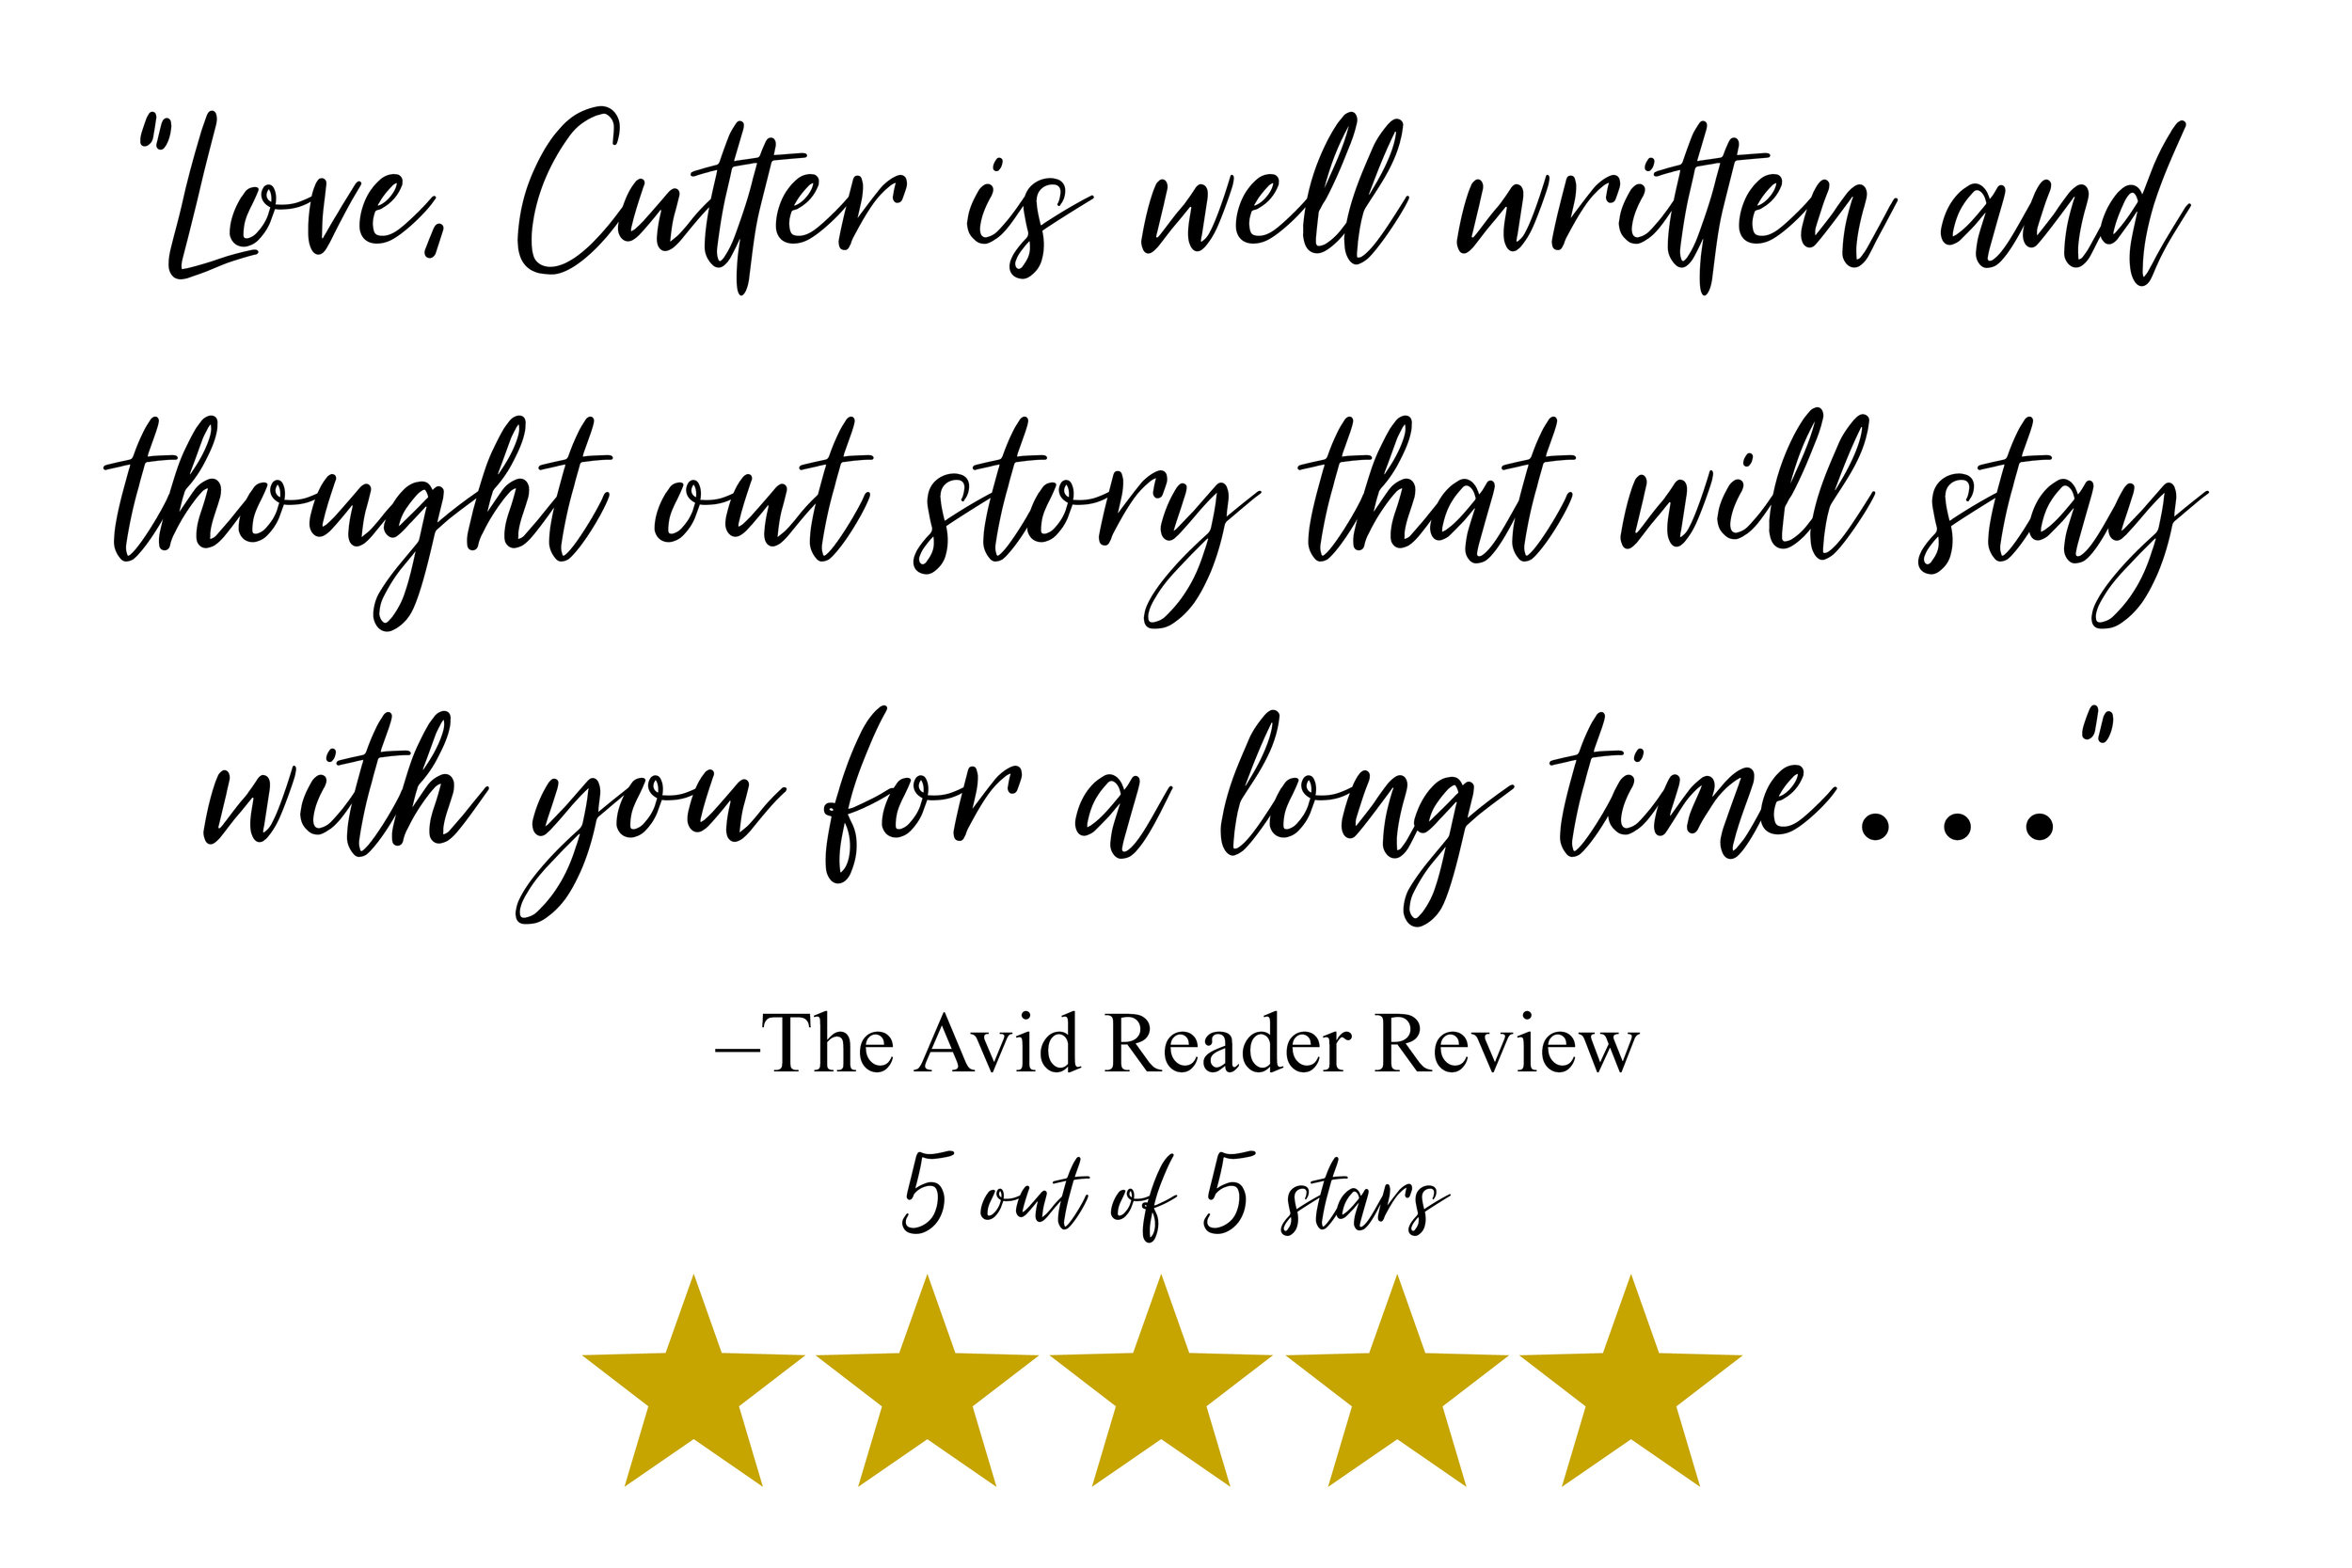 """Love, Cutter is well written and thought out story that will stay with you for a long time…""–The Avid Reader Review"